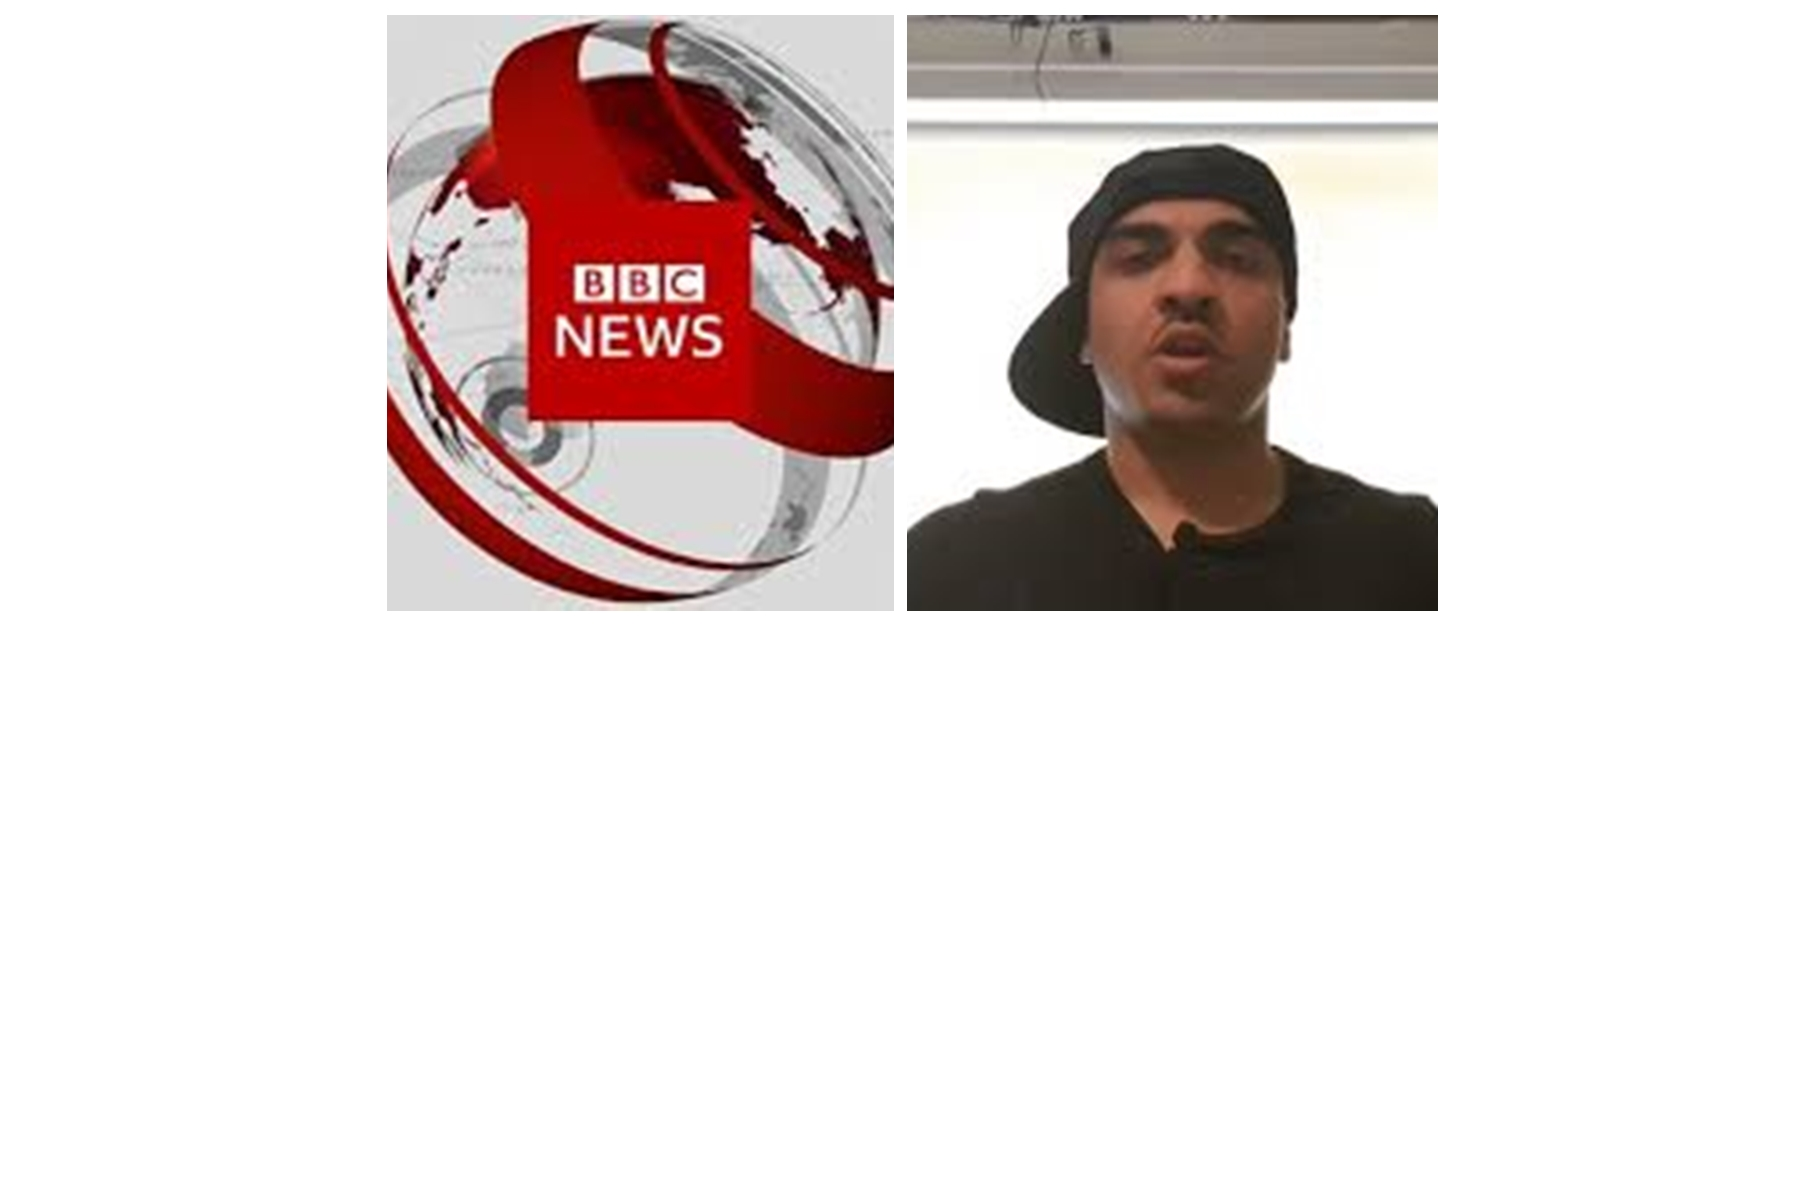 """BBC News Call Man """"Predatory"""" In Article During His Trial Despite Him Pleading Not Guilty Of Any Criminal Behaviour"""